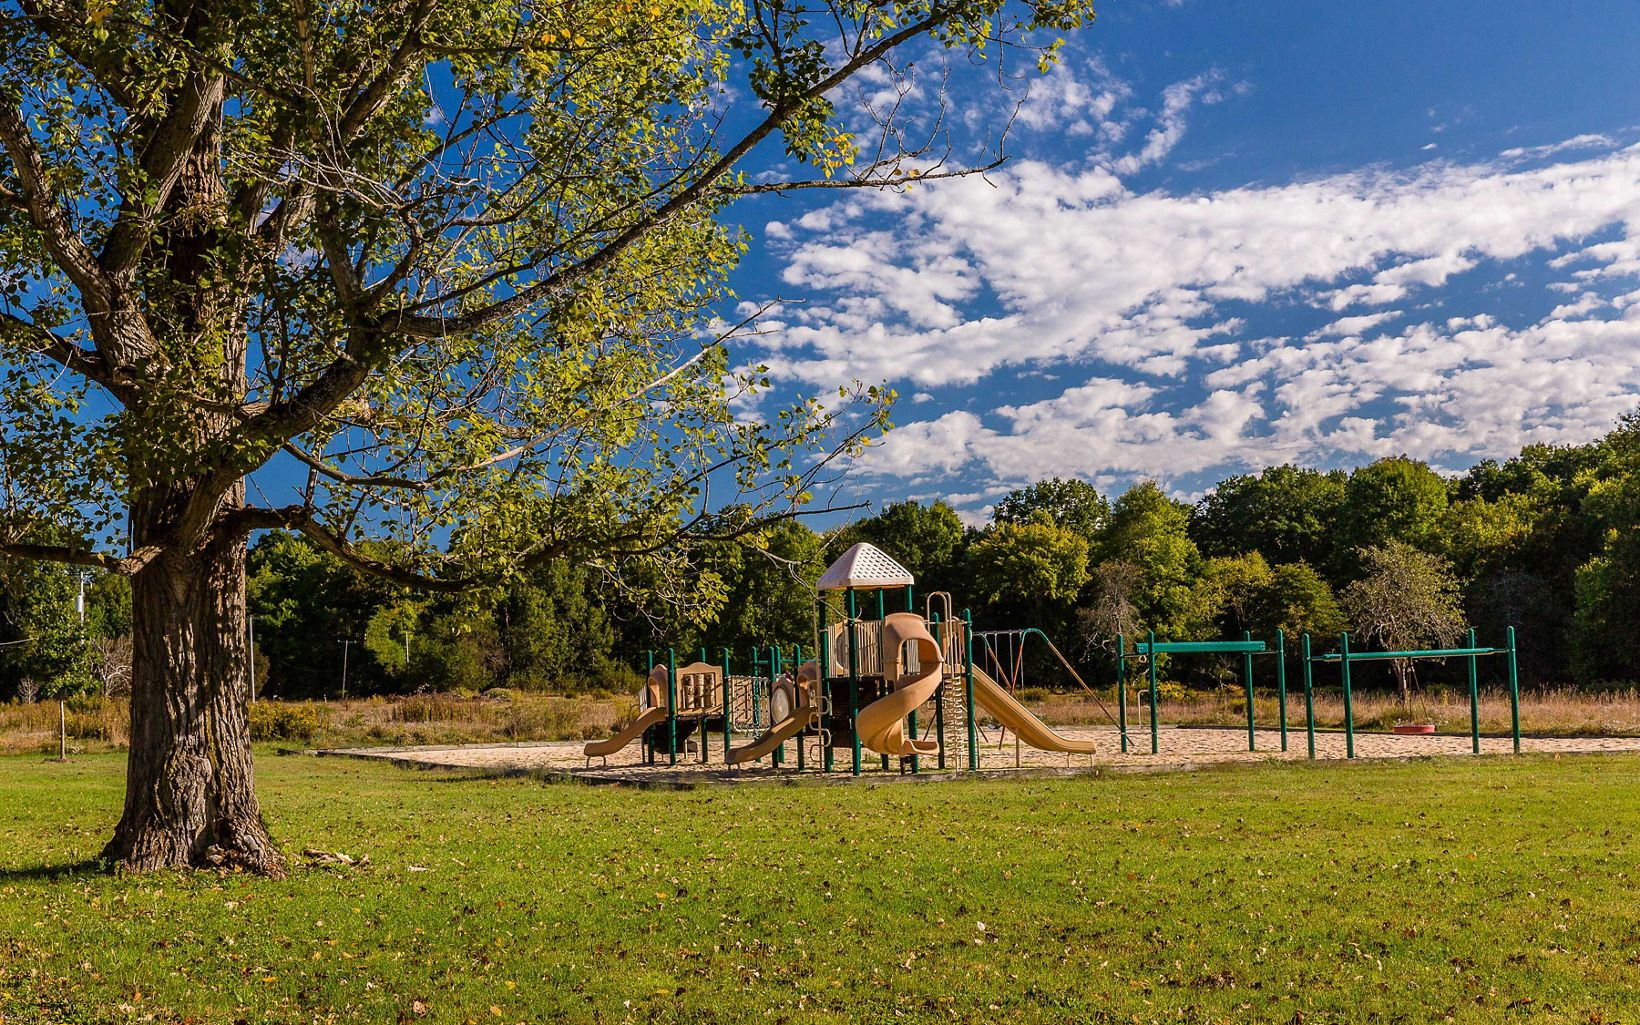 Playground at the Grand River Conservation Campus